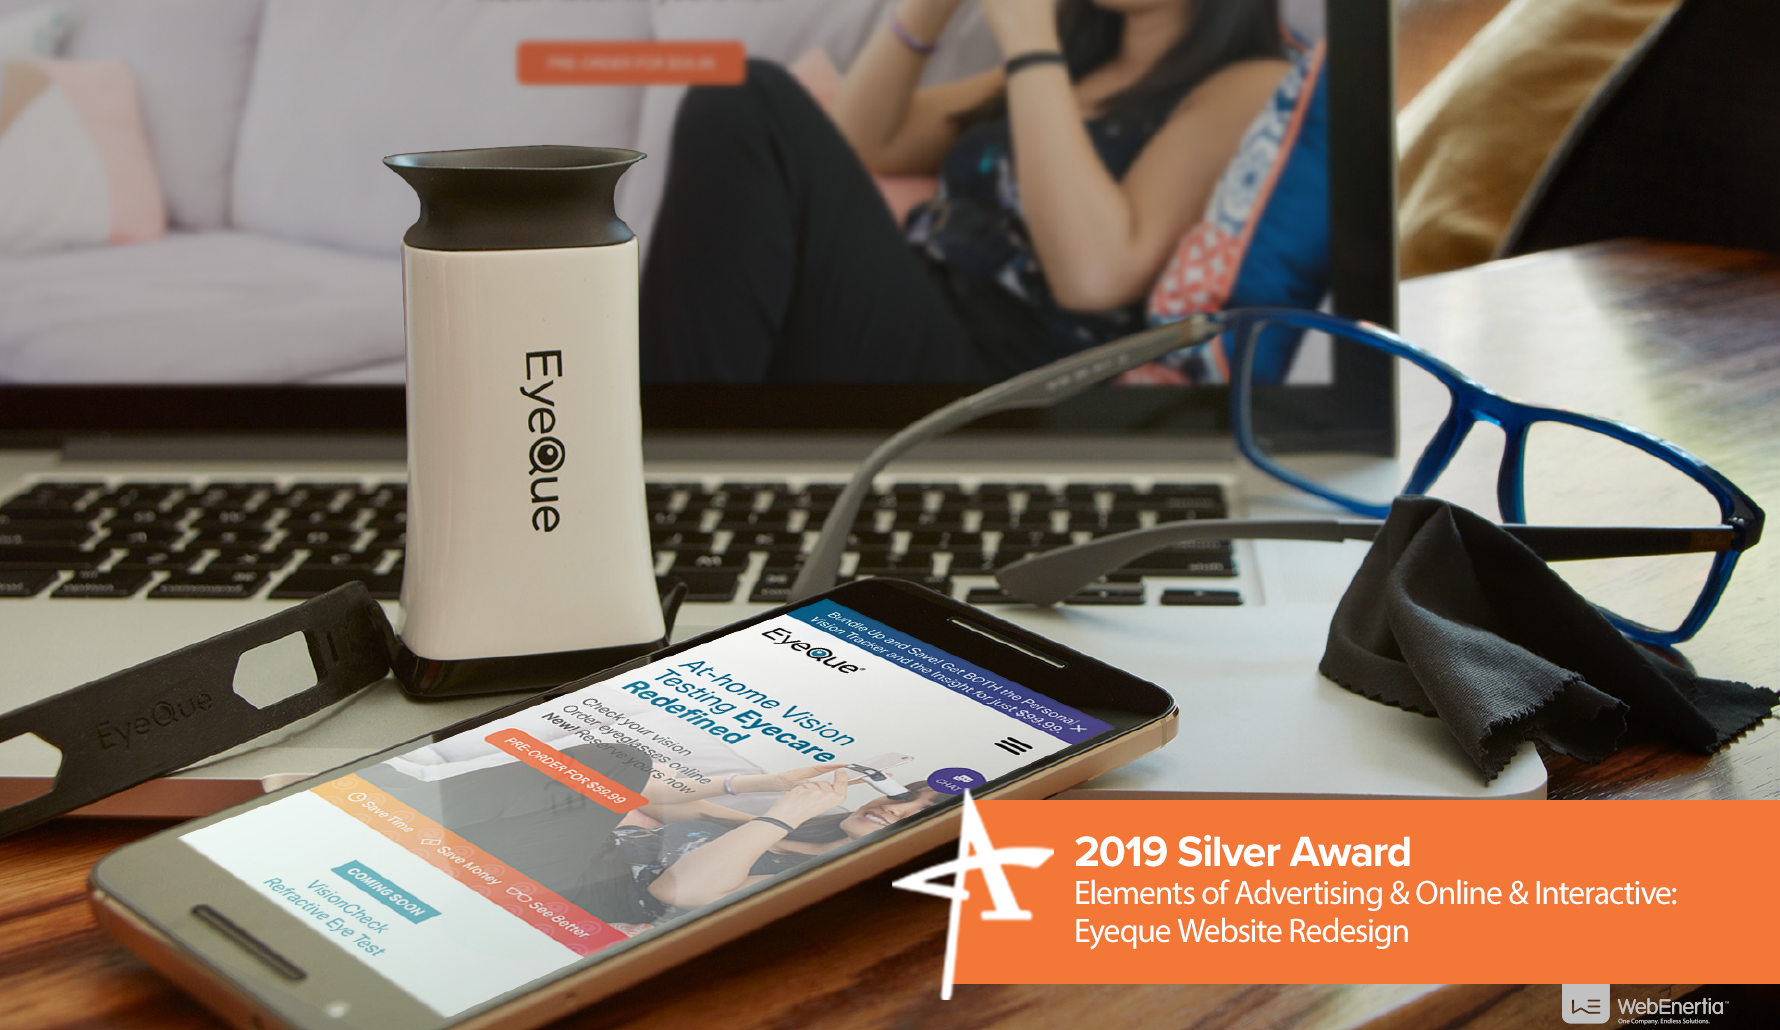 2019 Silver Addy Award - Elements of Advertising & Online & Interactive: Eyeque Website Redesign